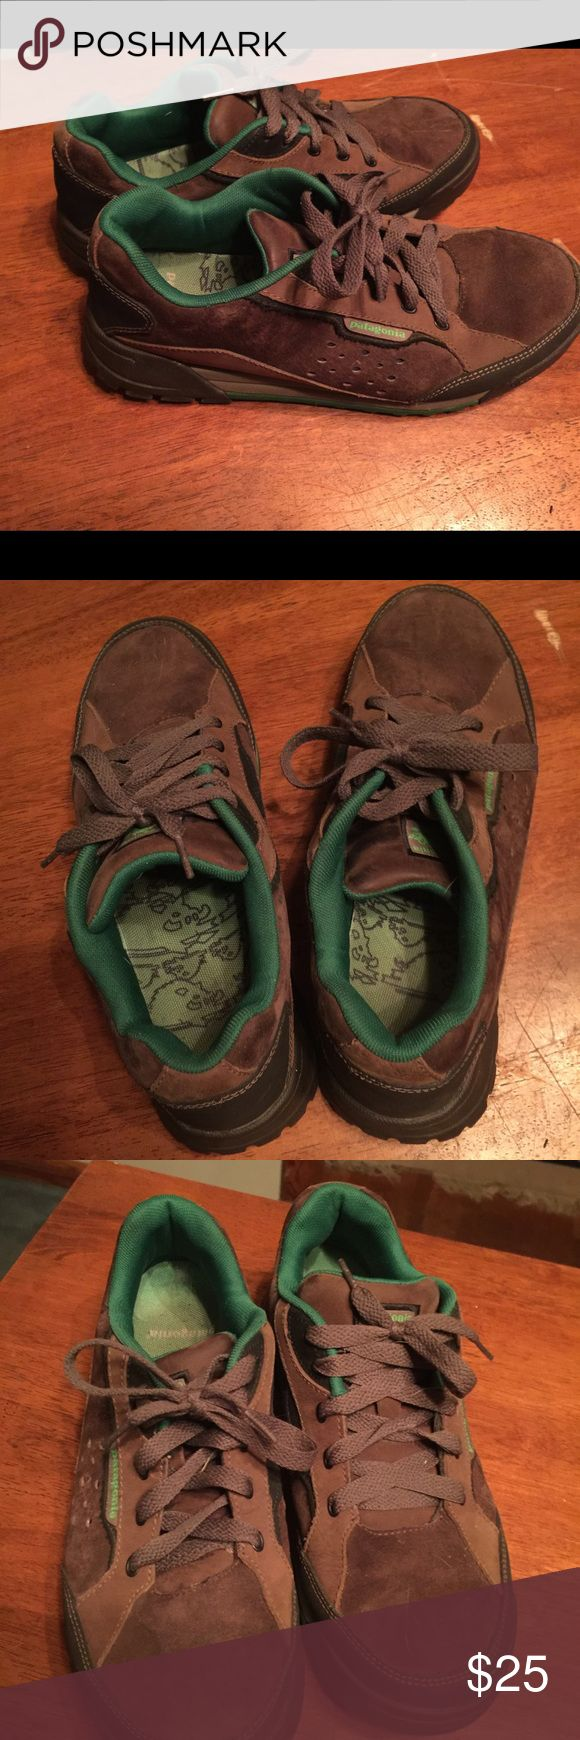 Patagonia Hog Tie Brown Trail Sport Sneakers sz 9 Great shoes for a great price! Patagonia Shoes